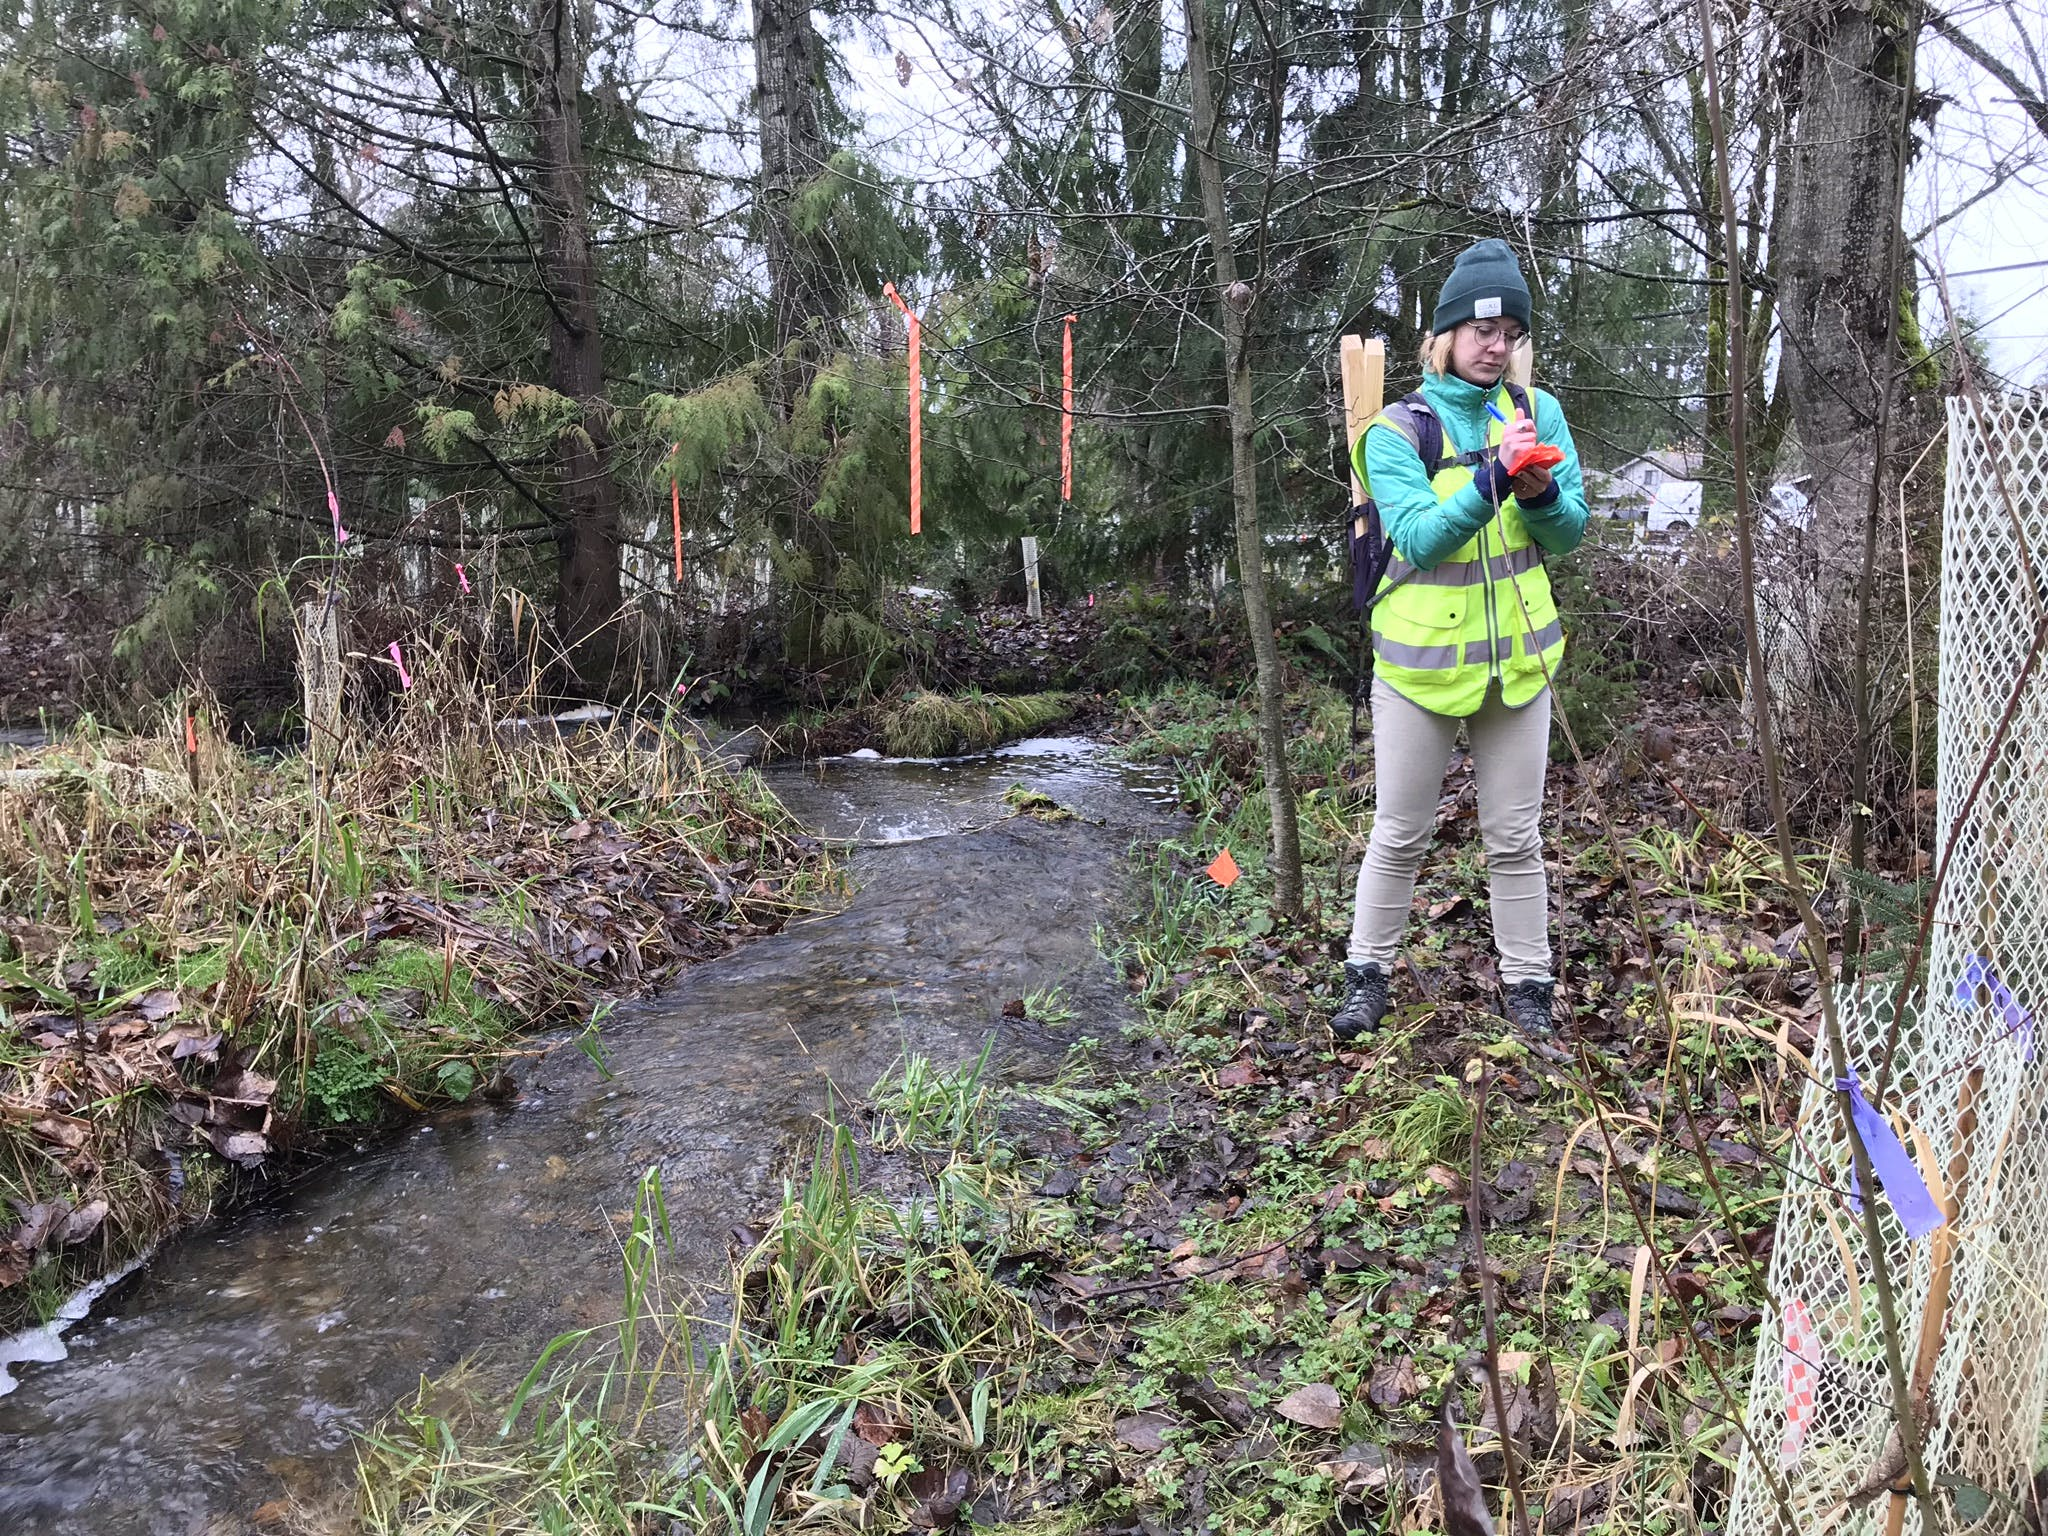 Field Work to Determine the Bank Full Width